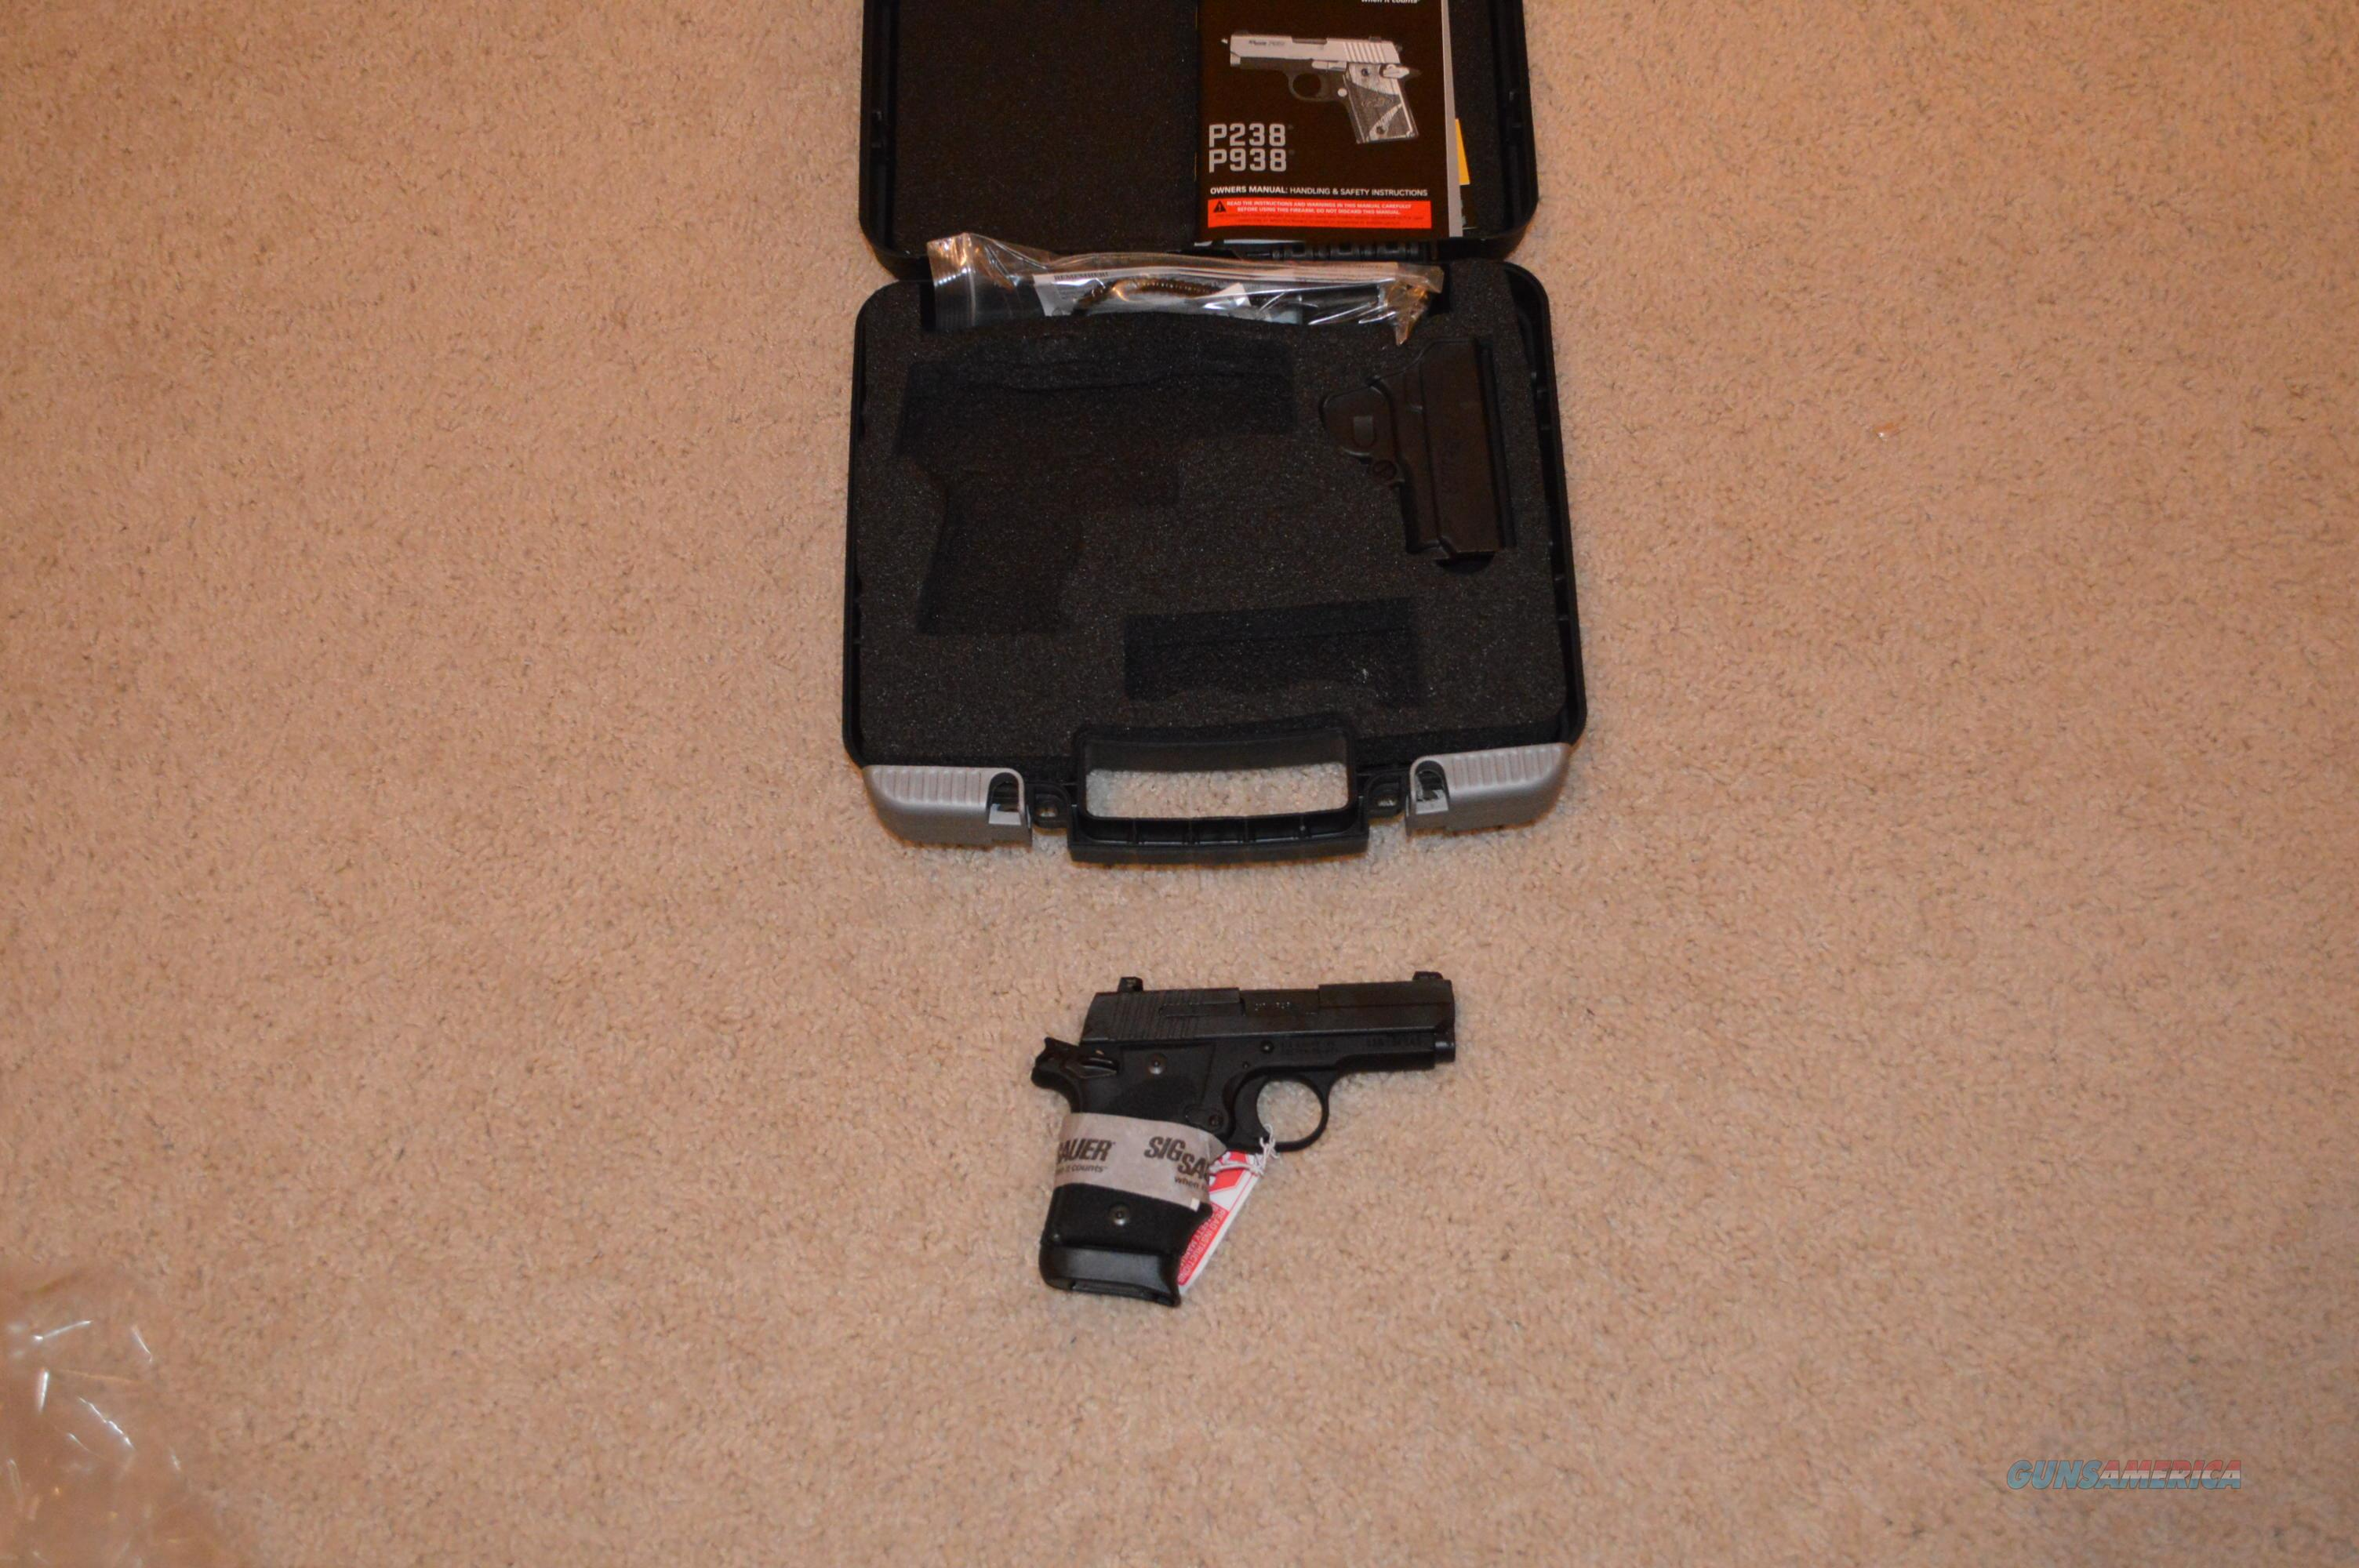 Sig 938 BRG Call for Sale Price!  Guns > Pistols > Sig - Sauer/Sigarms Pistols > P938